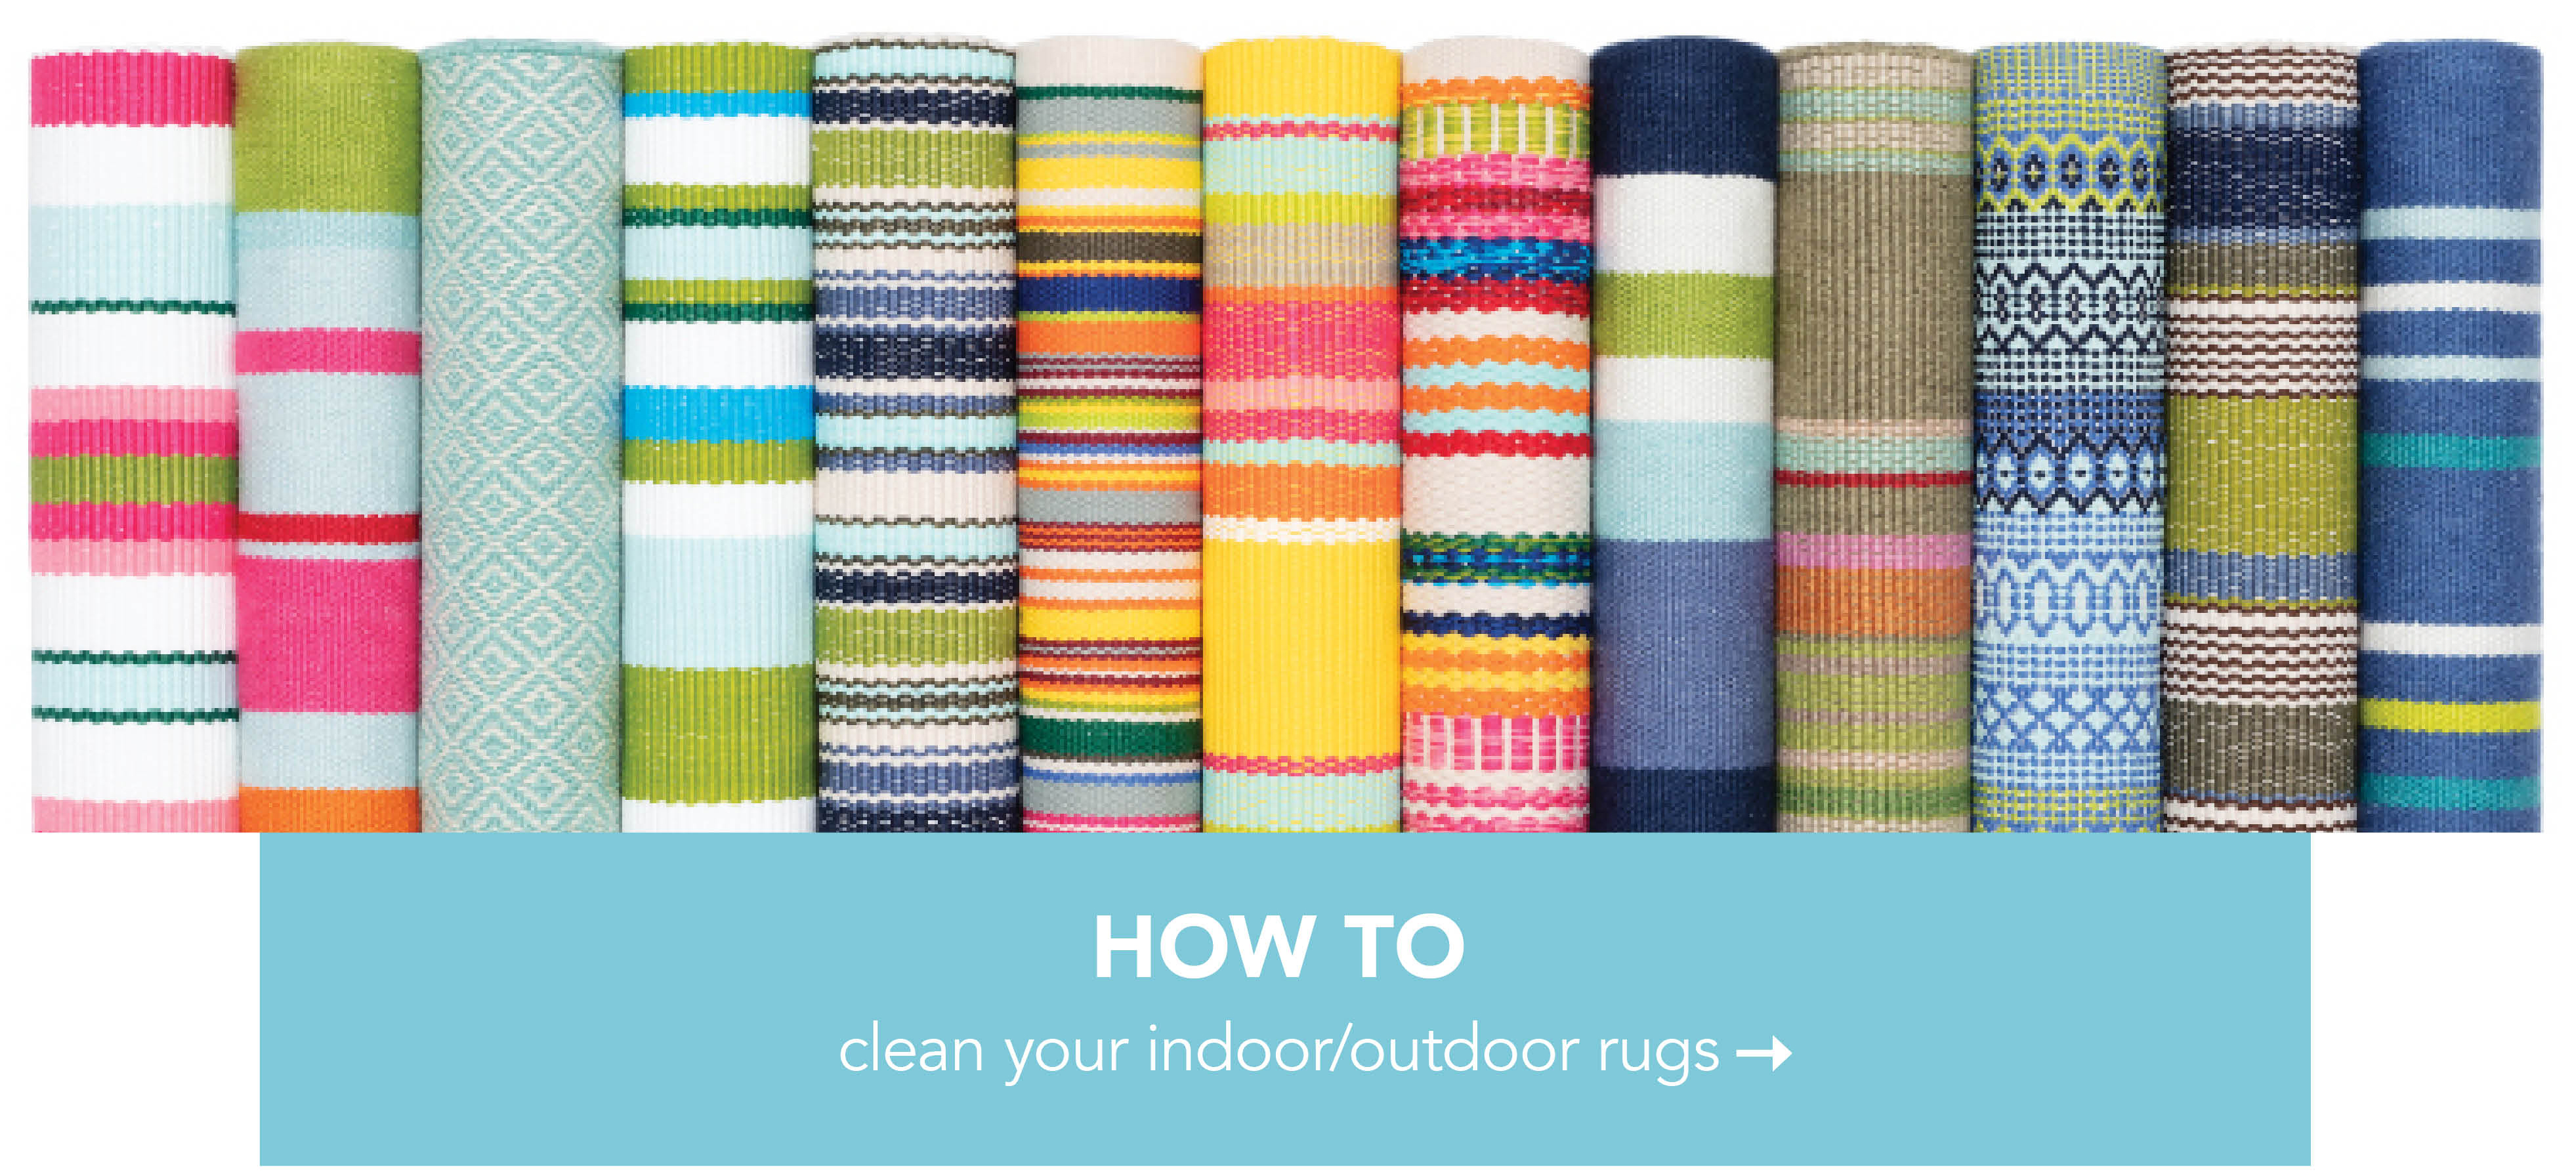 How to clean your rug